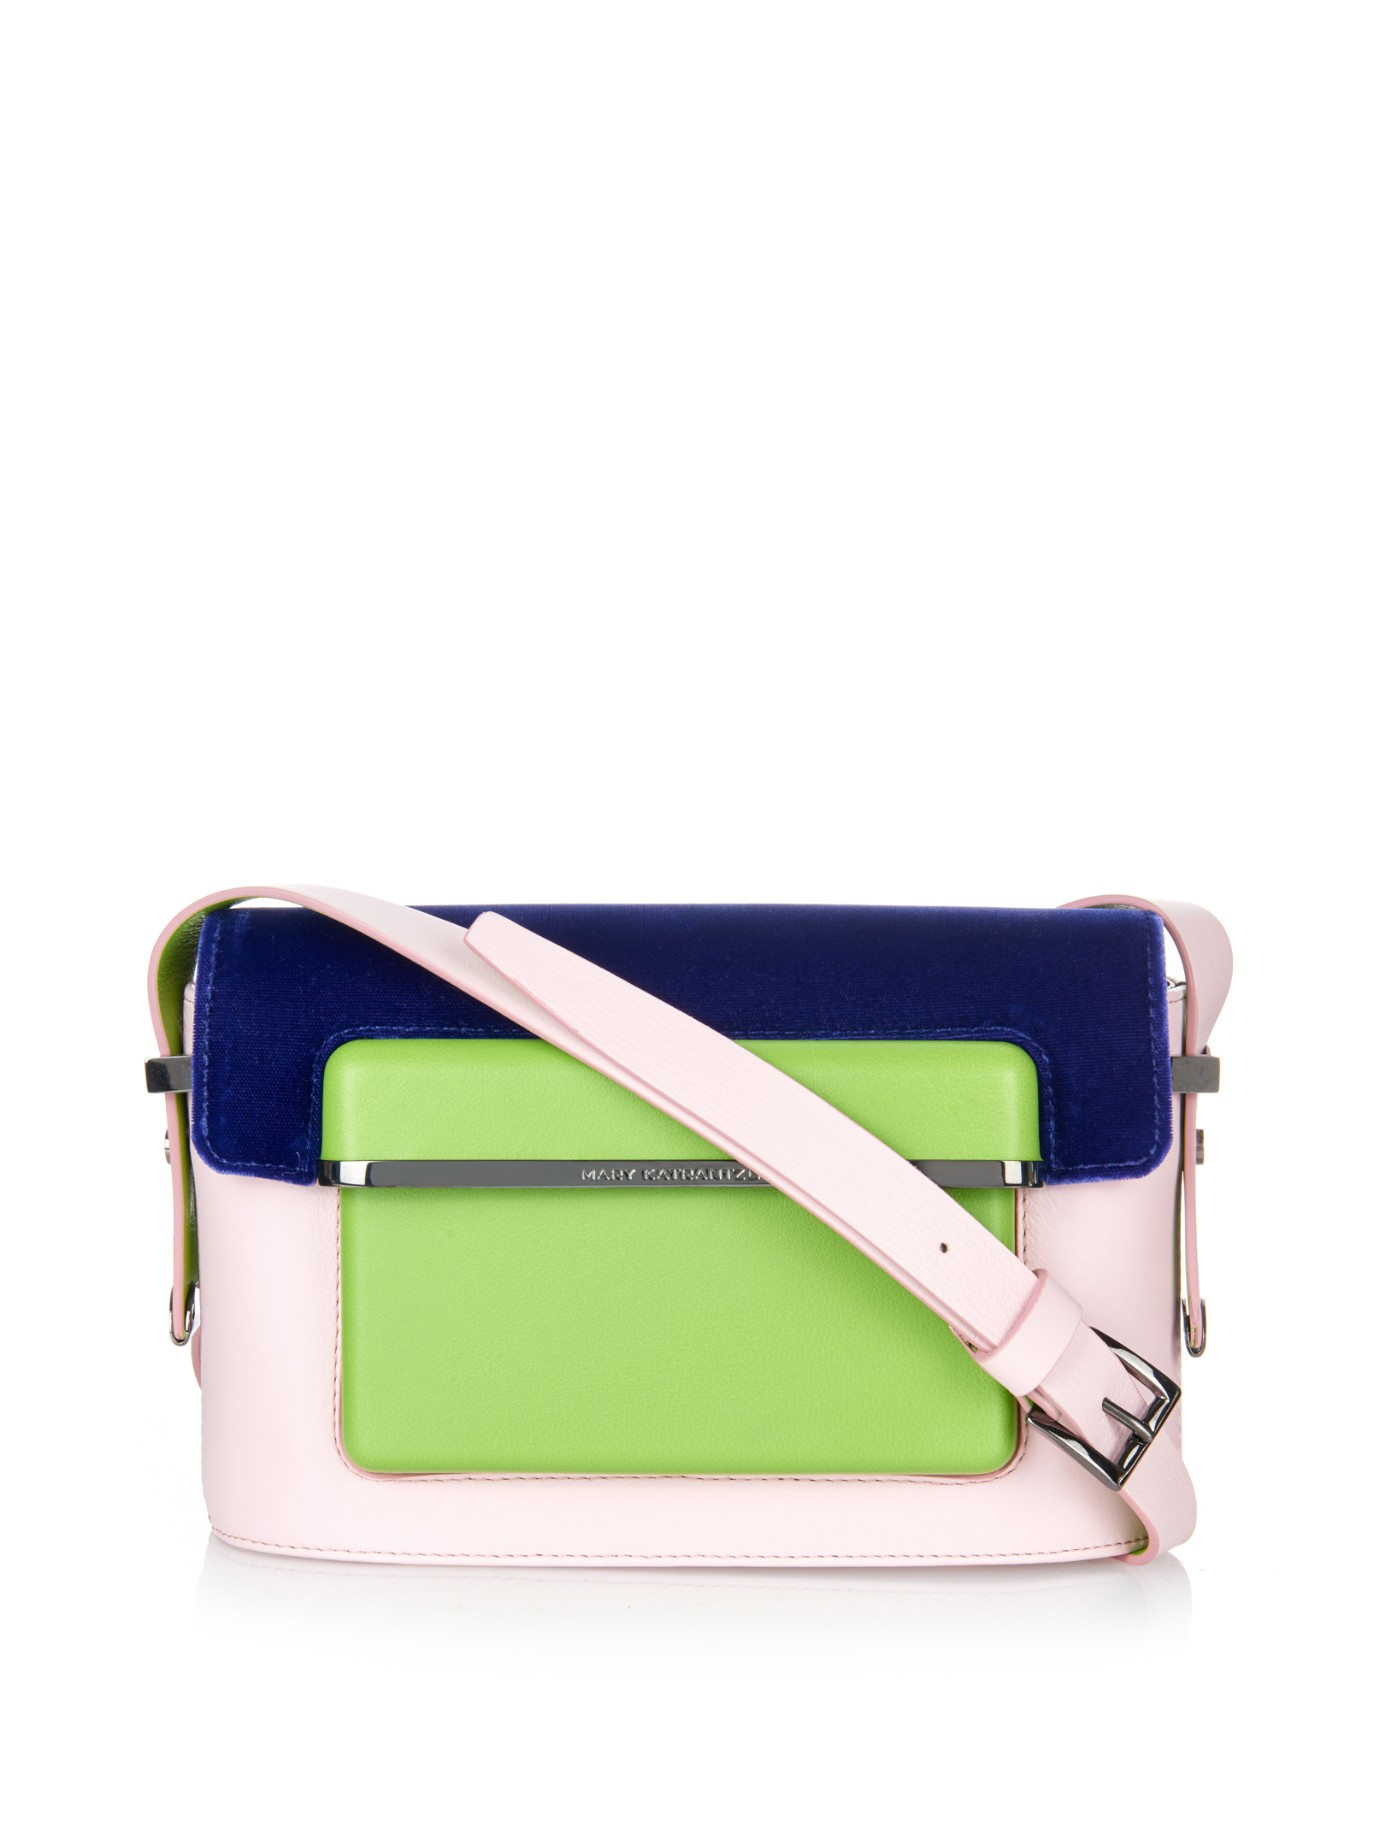 fcce62bf8f4 Mary Katrantzou Mvk Small Leather And Velvet Cross-body Bag in Pink ...